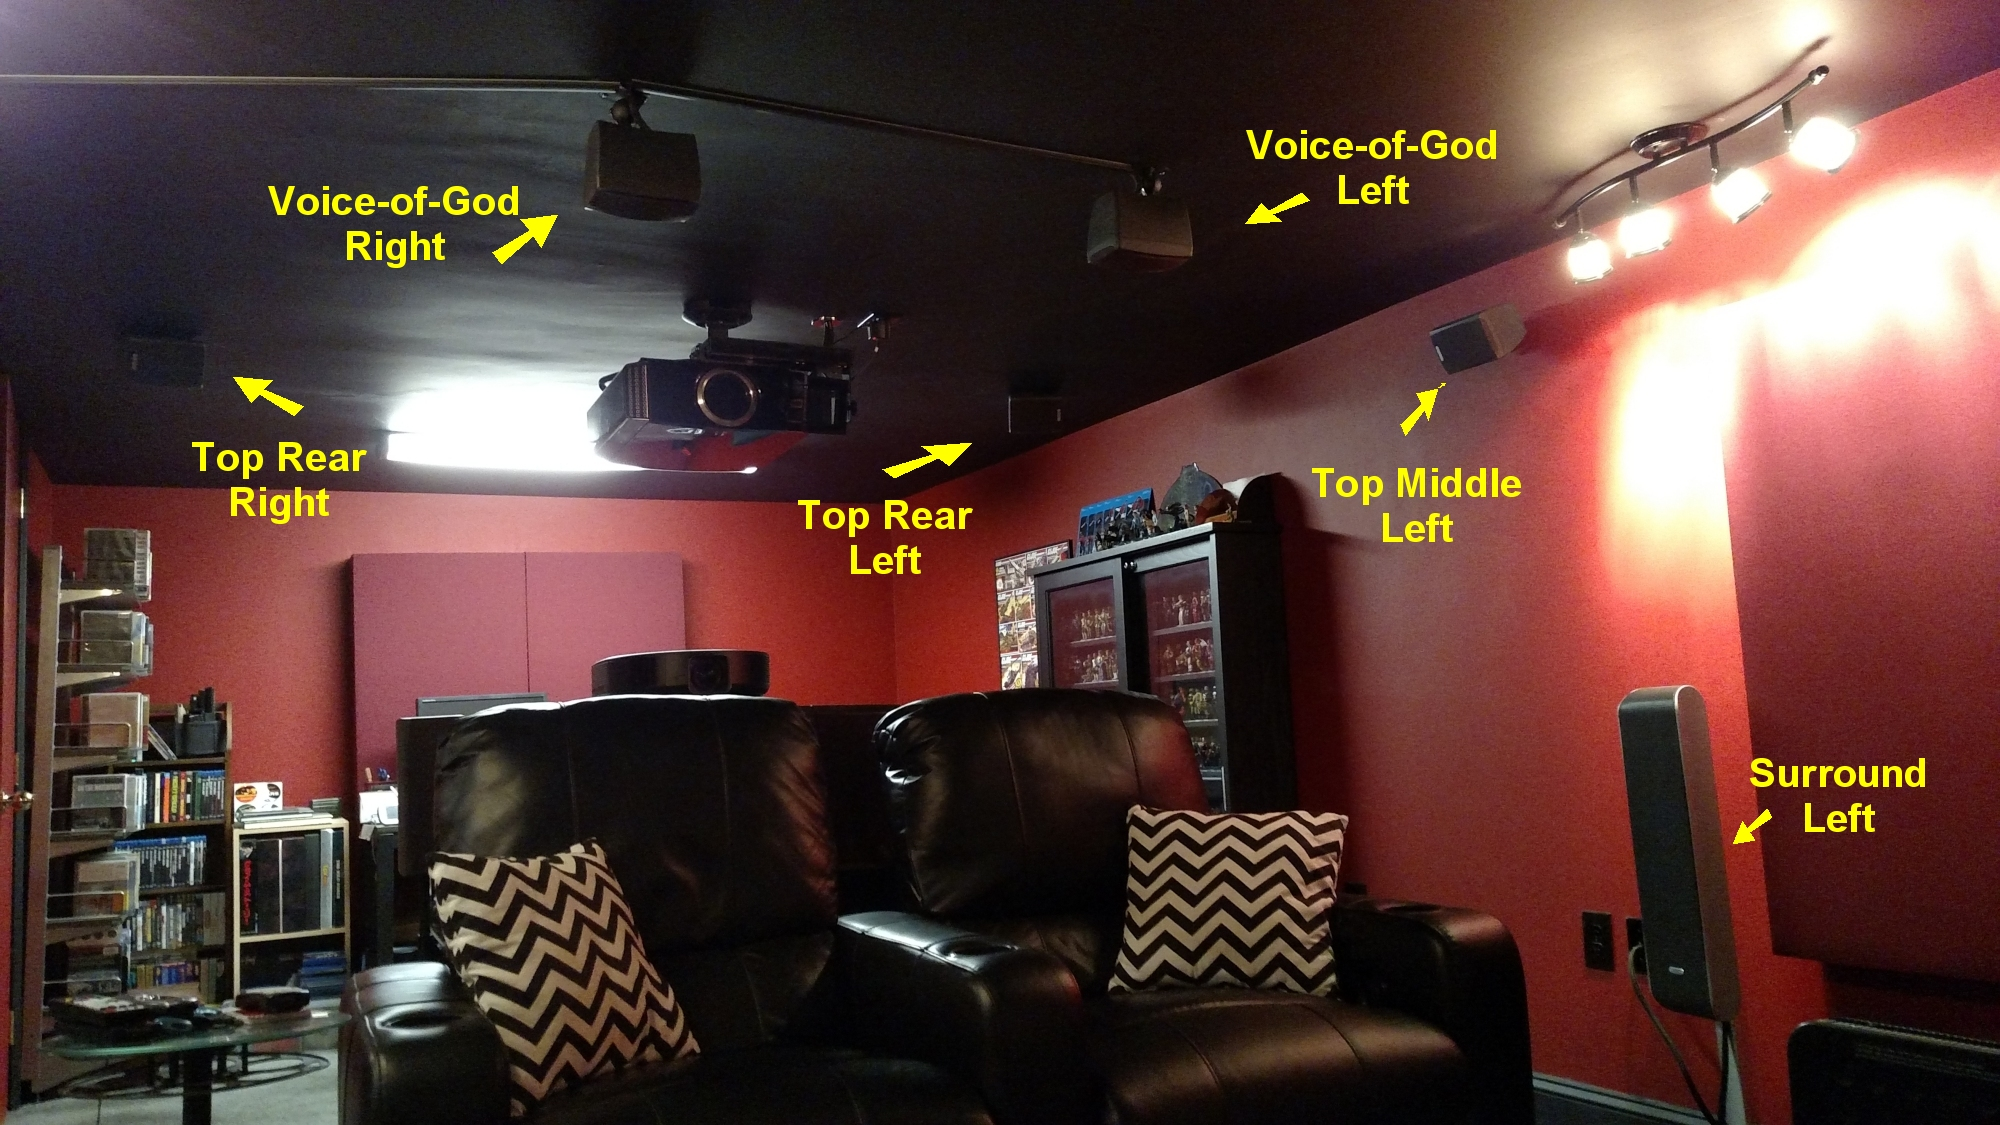 No Such Thing As Too Many Speakers Customizing A Dolby Atmos Wiring Home Ceiling In Order To Drive This Channels I Need Simultaneously Run Two Theater V Receivers The Primary Unit Is Denon Avr X5200w Model